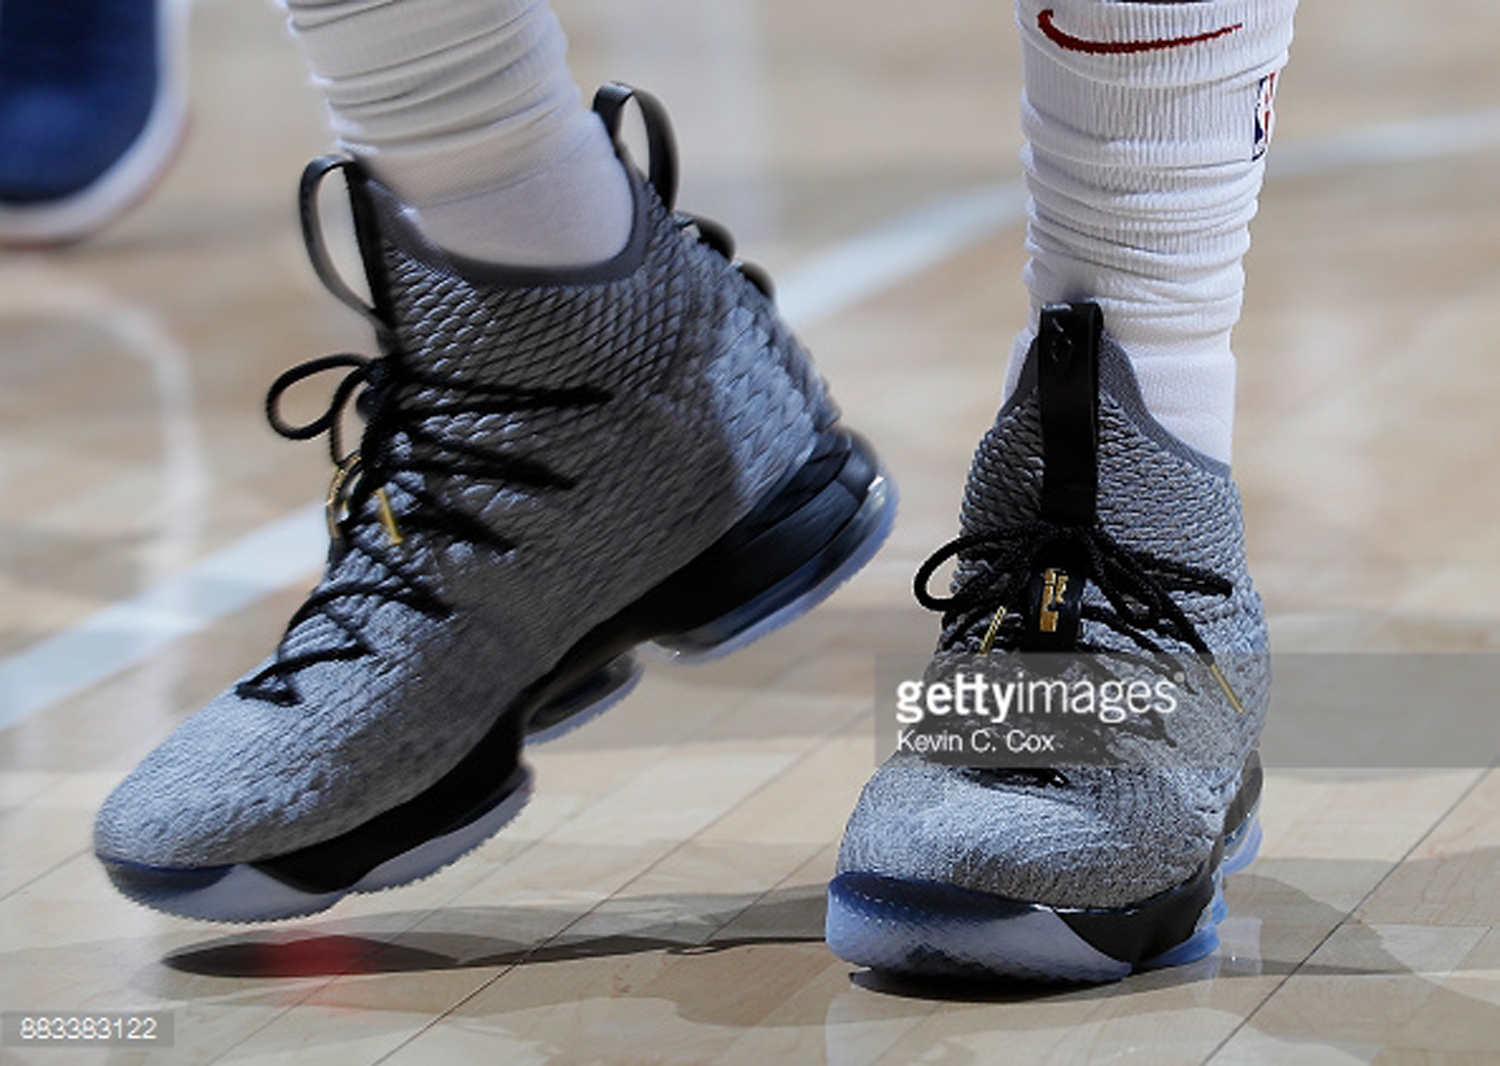 the best attitude d6942 f2b51 Nike Adds Lateral Stability to LeBron James' LeBron 15 PE ...